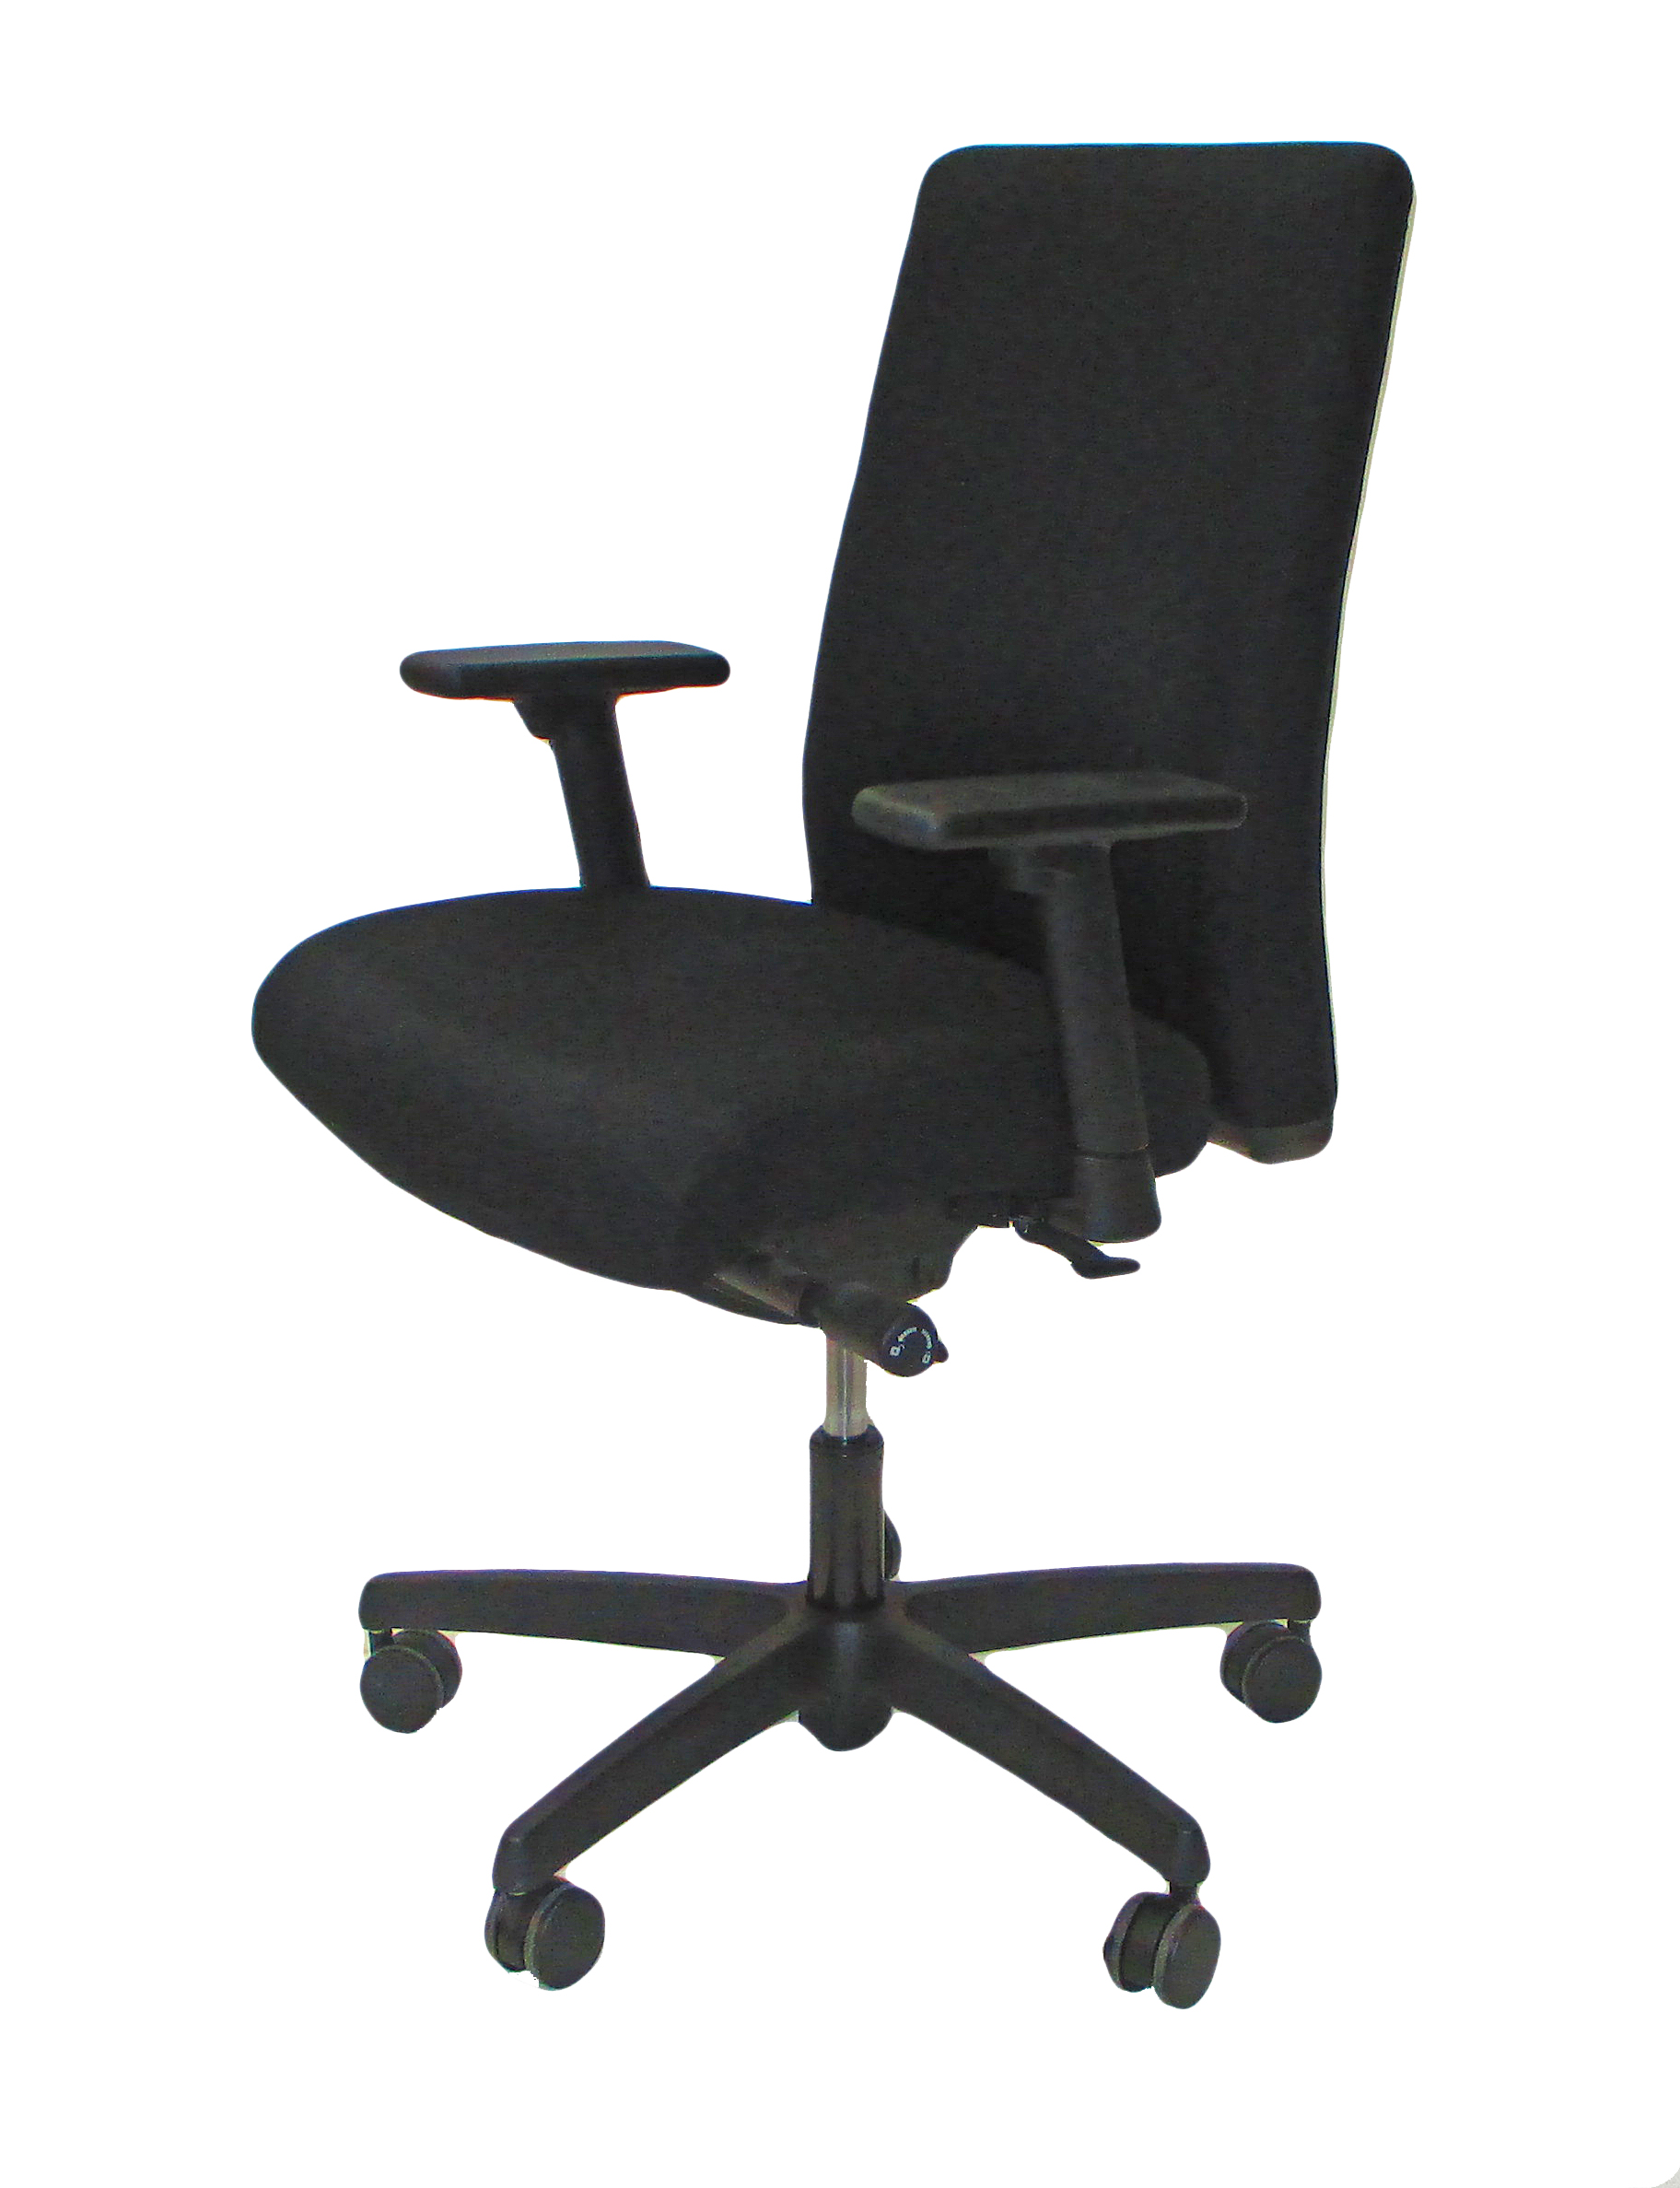 hon ignition fabric chair stool chairs egypt used office furniture black task